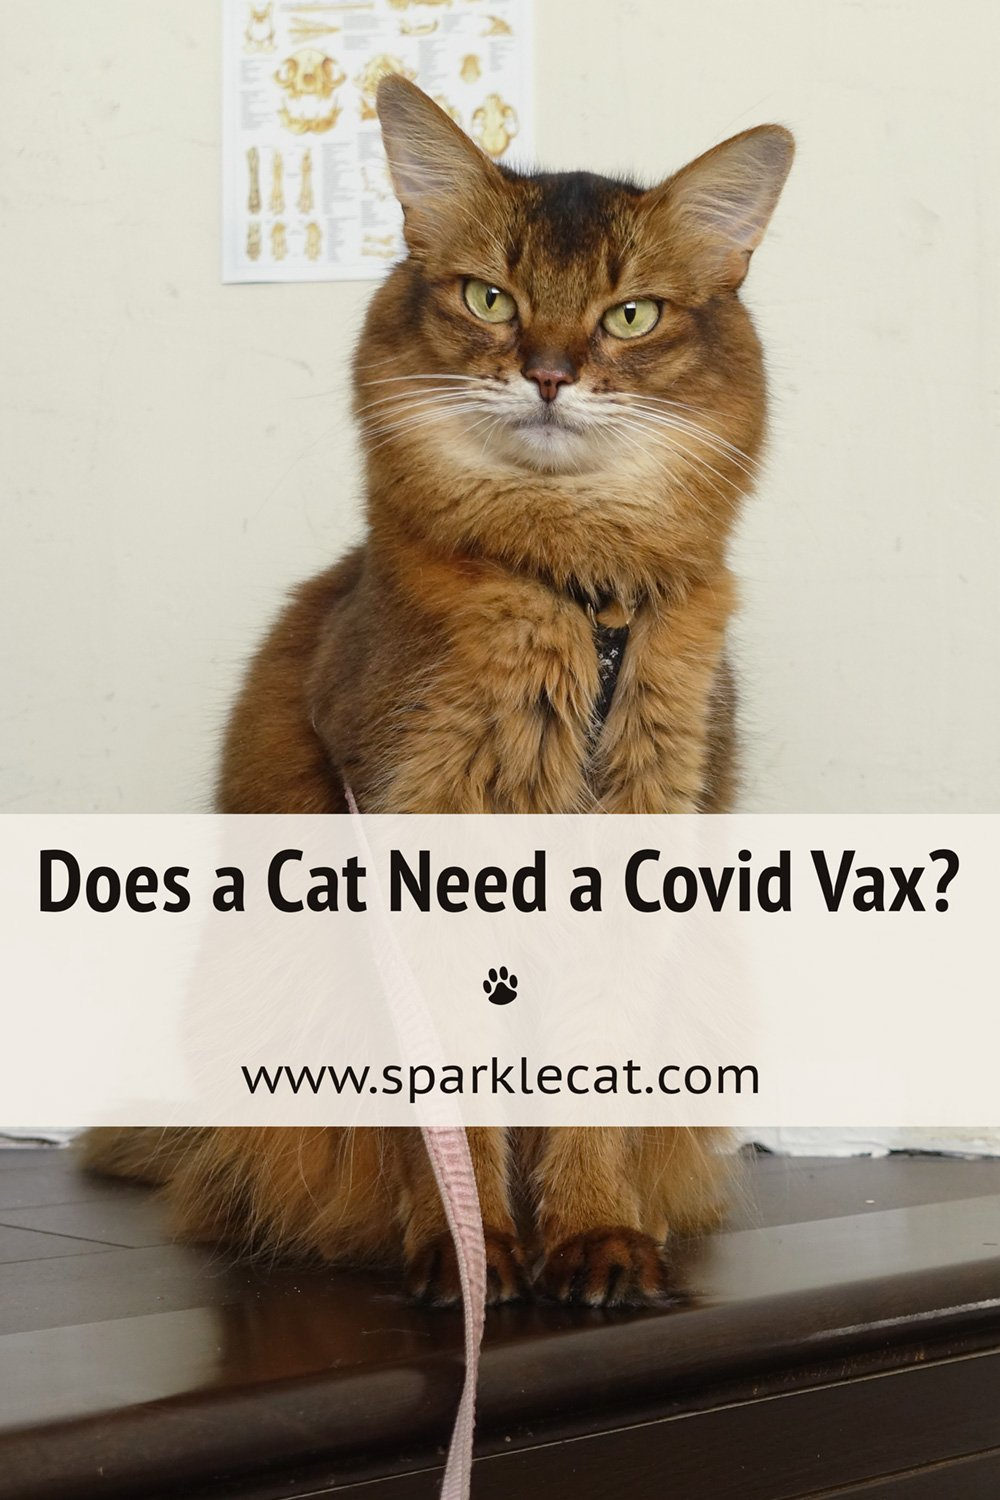 I Have to Get a Covid Vaccine!